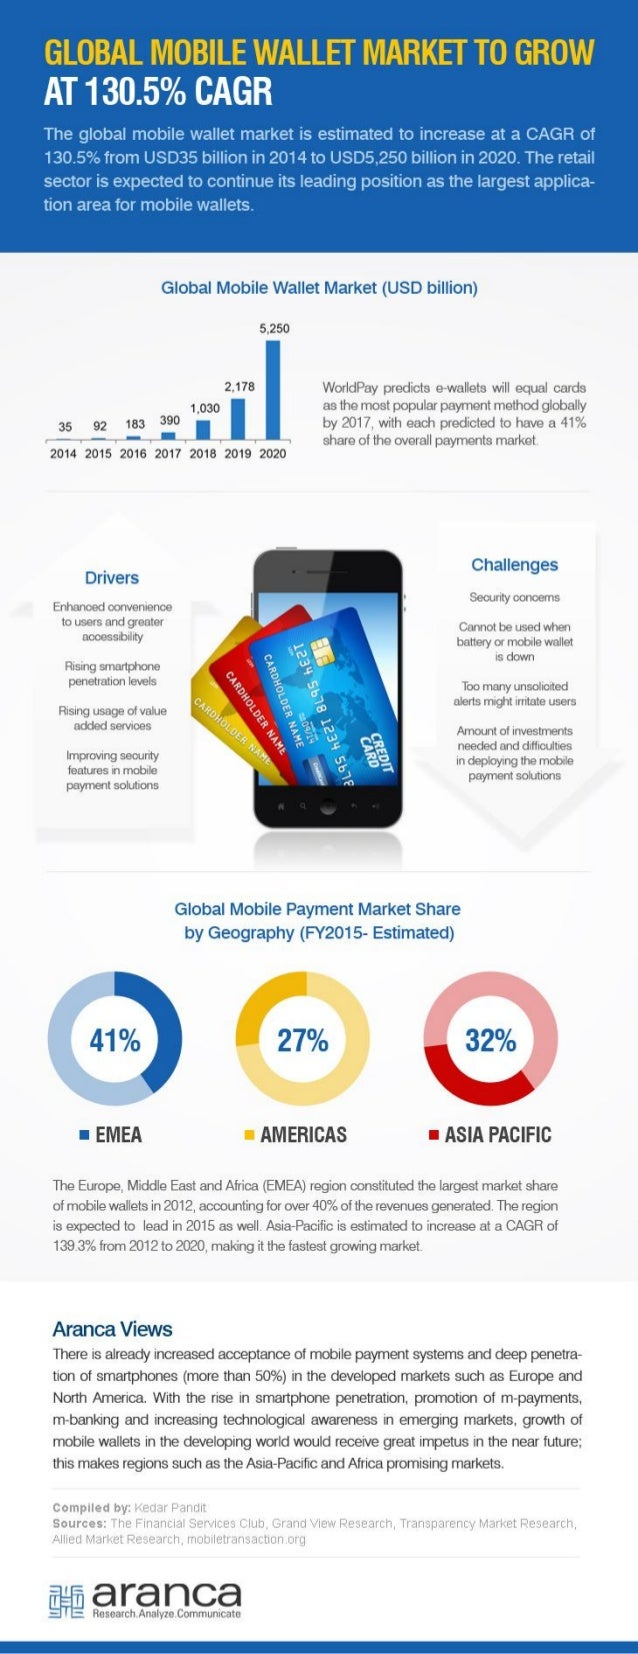 Most popular mobile wallets accessed in-store by U.S. users 2017